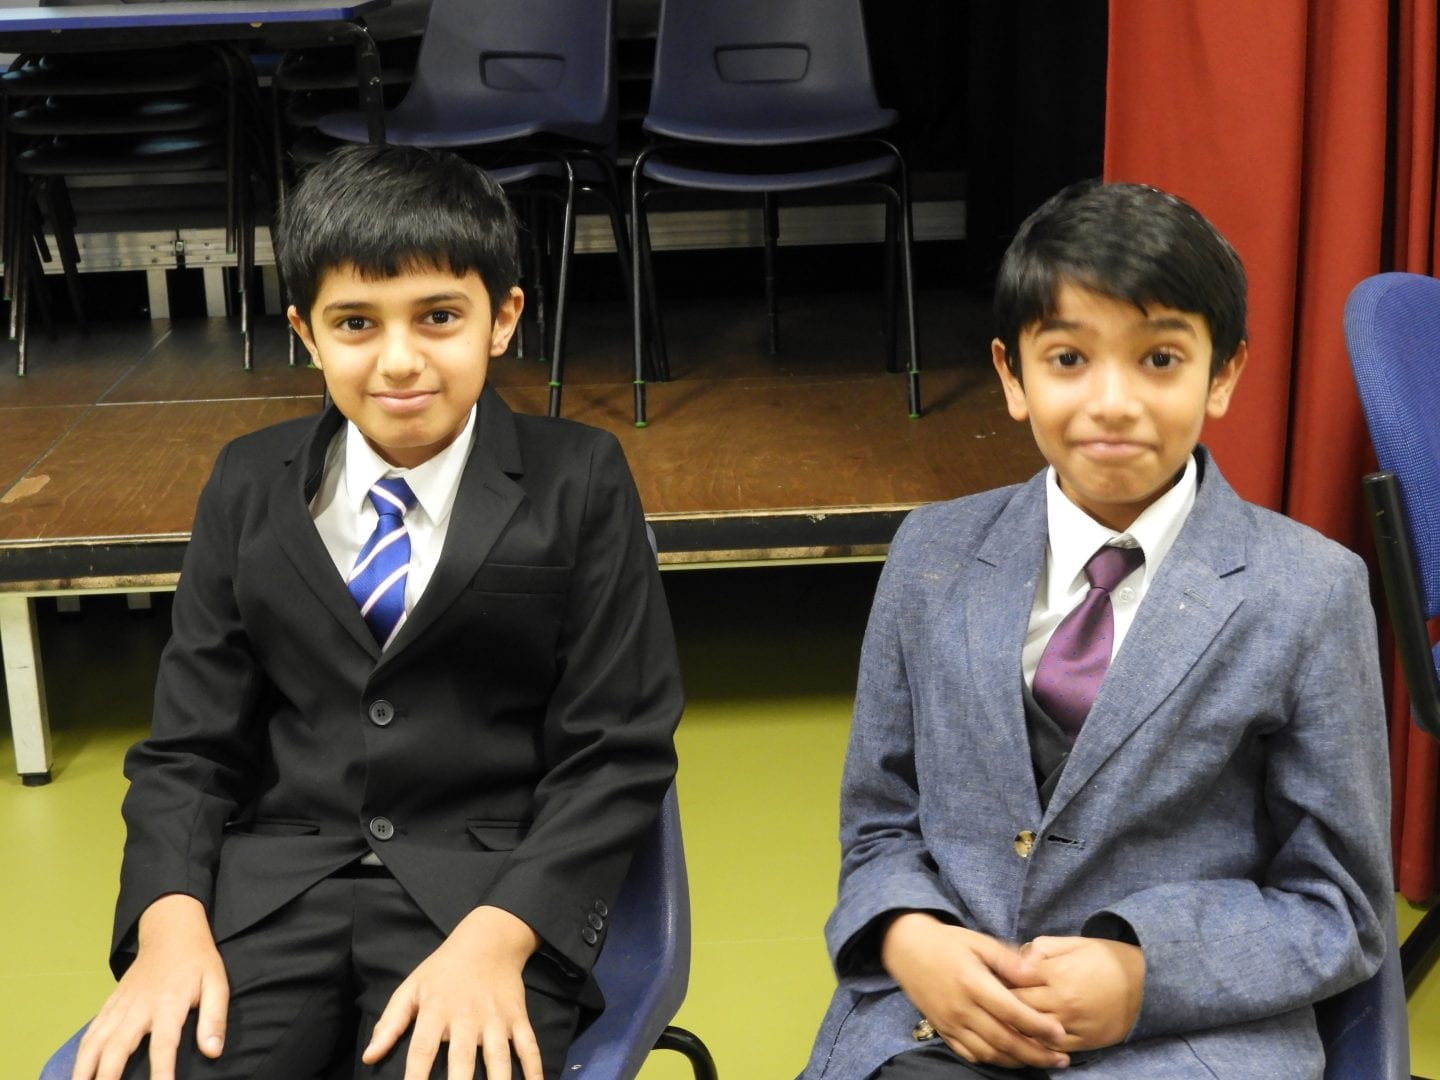 LCS pupils on Headteacher for the Day